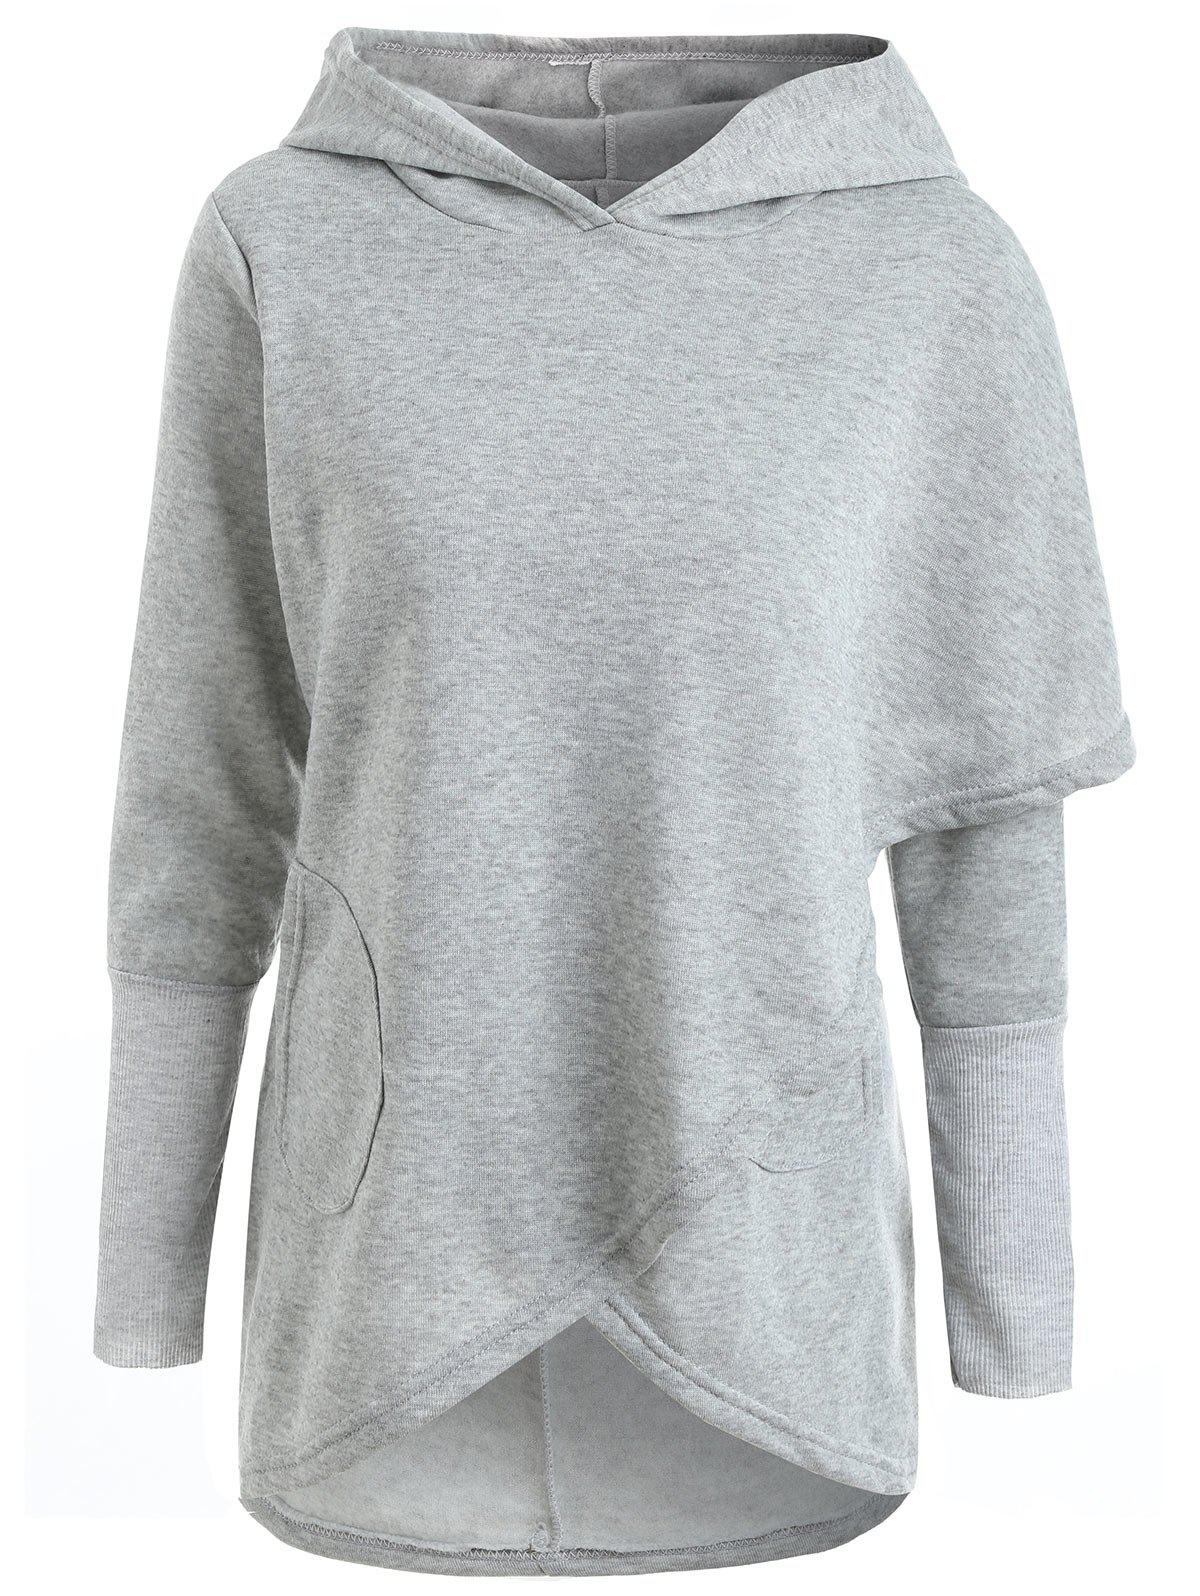 Long Sleeve Asymmetrical High Low Pullover Hoodie - GRAY M